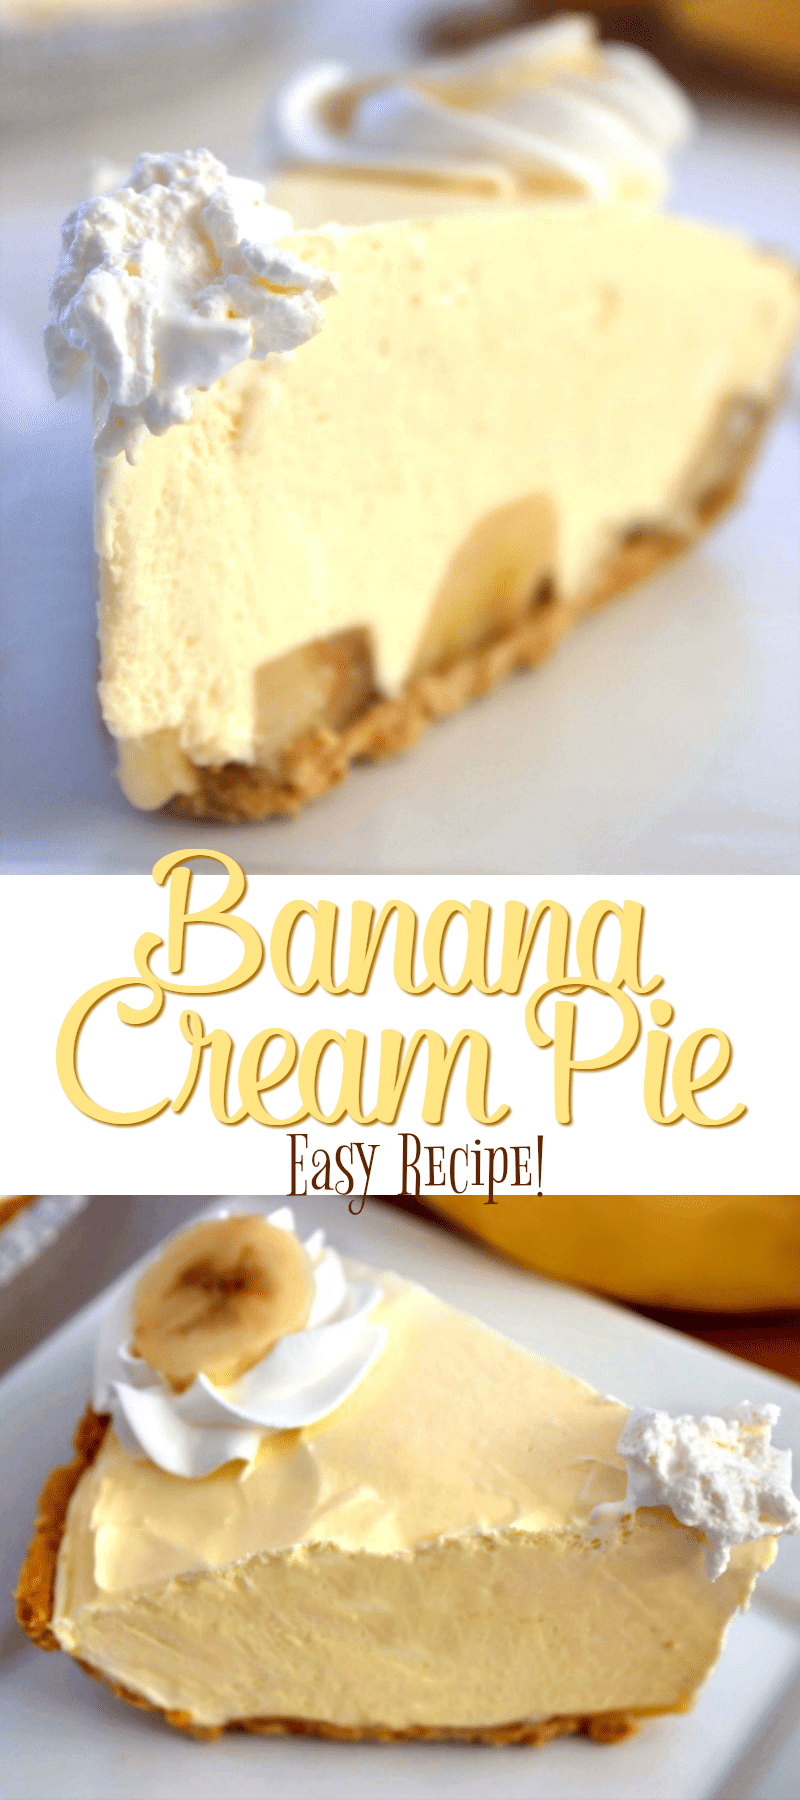 Easy Banana Cream Pie Recipe - The best and easiest Banana Cream Pie ever!